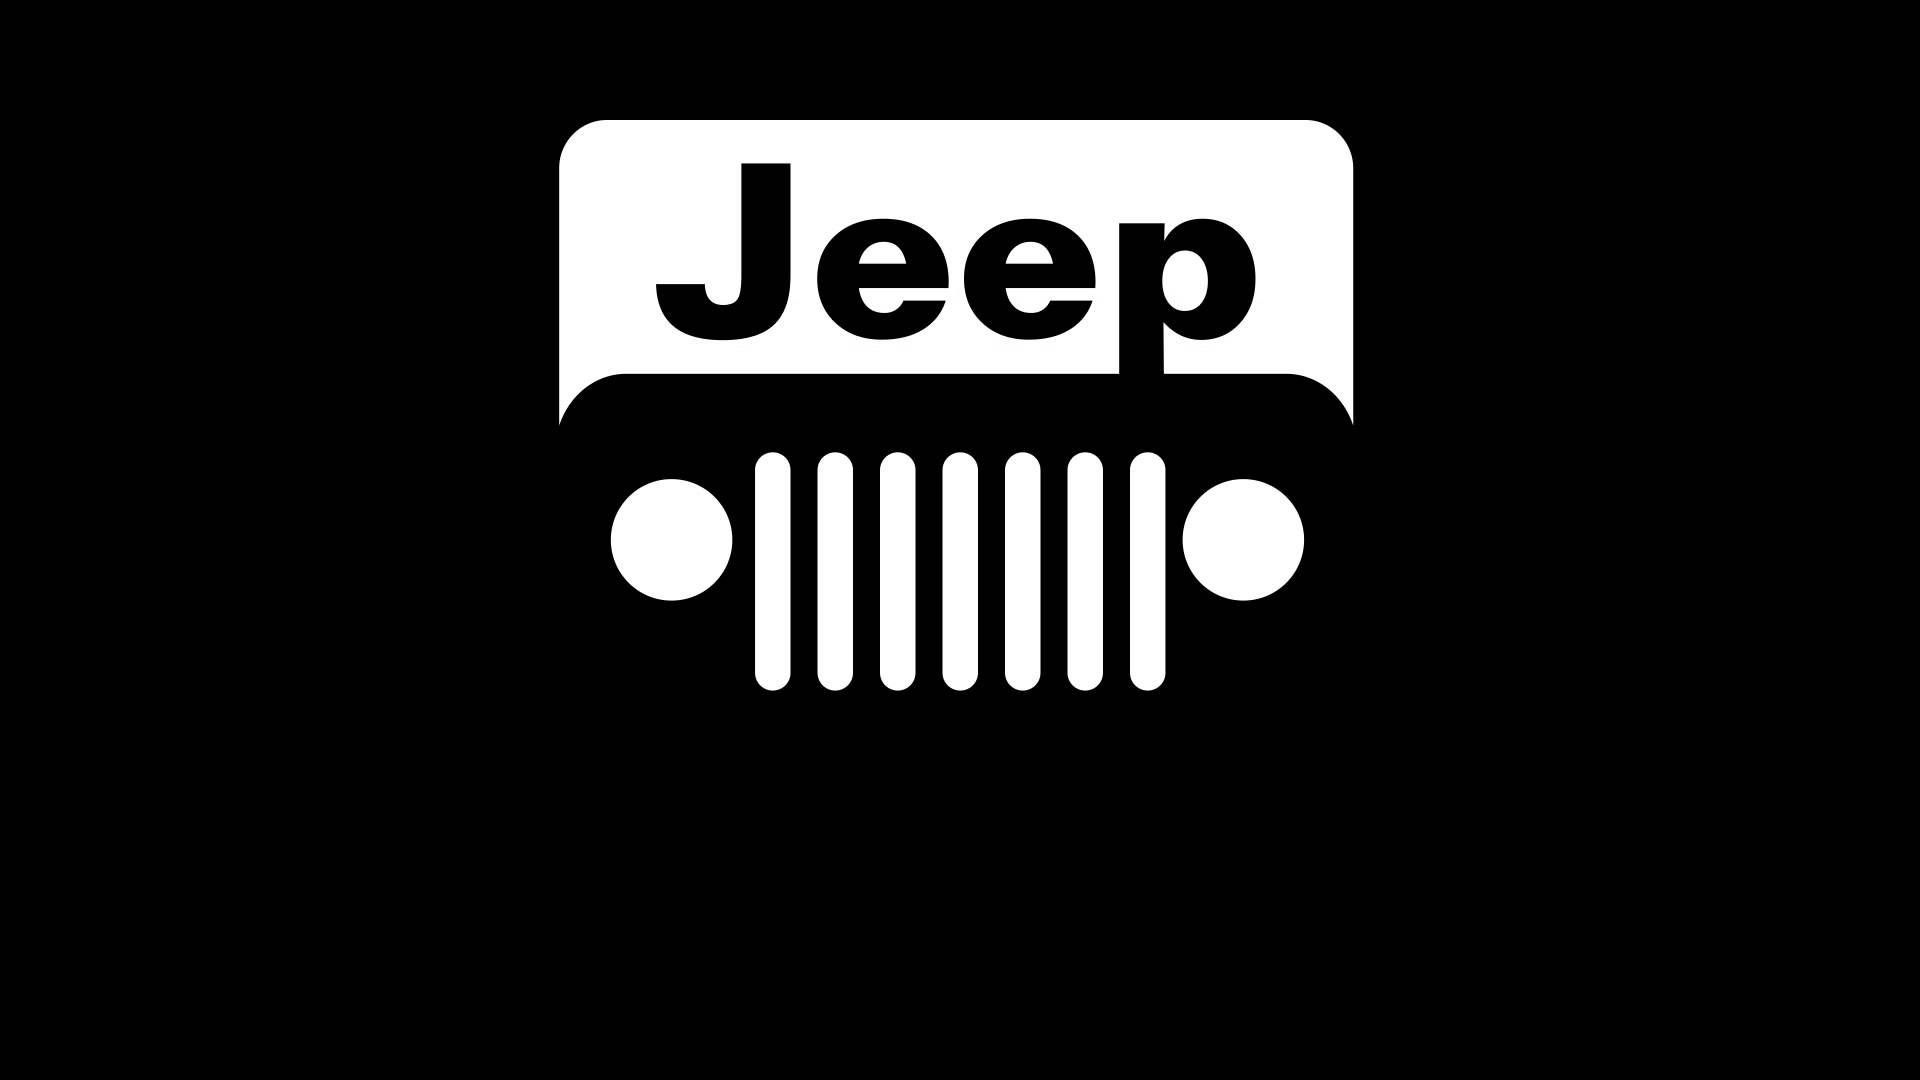 Desktop Background Jeep Logo Wallpaper